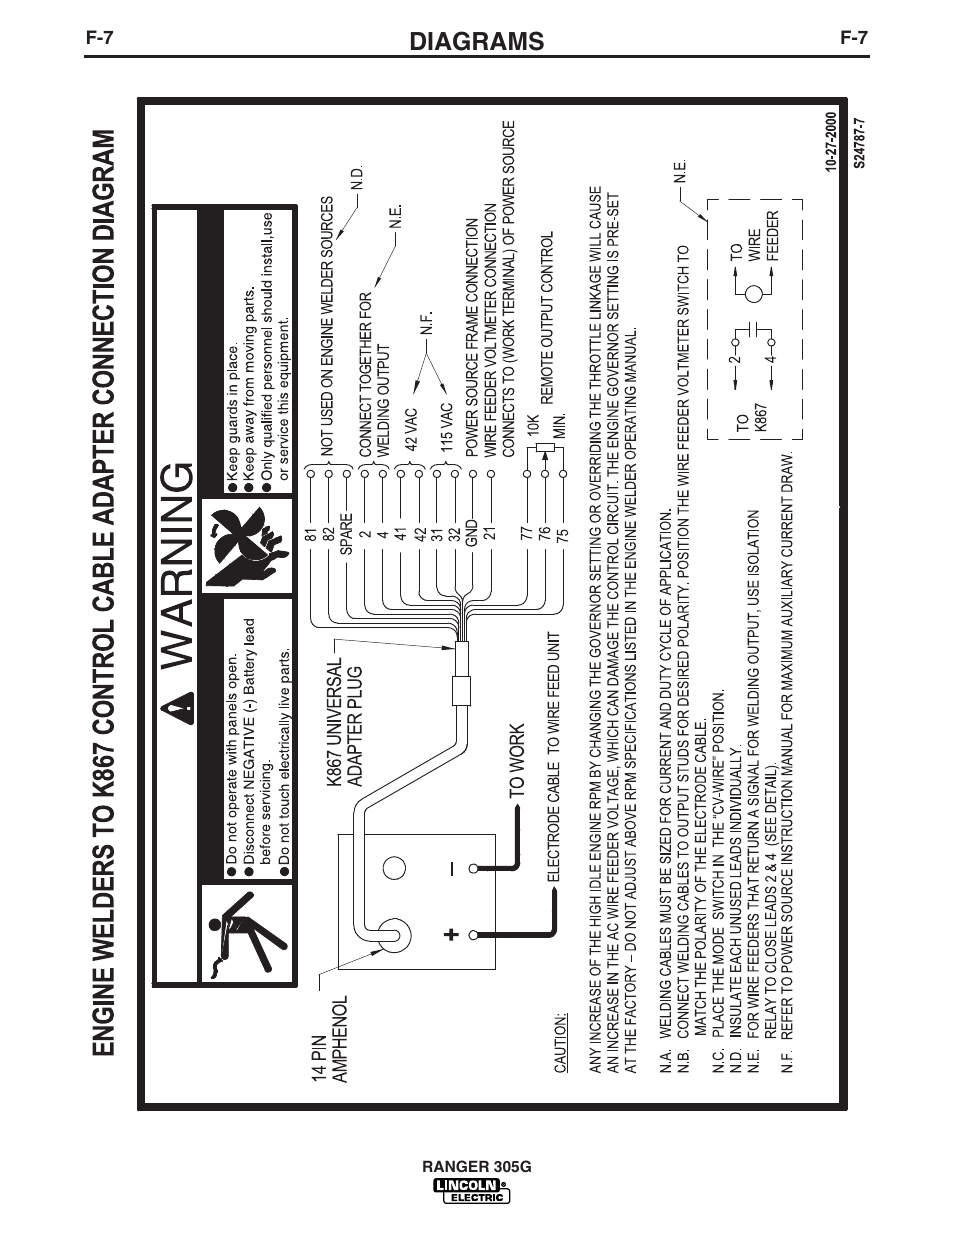 Diagrams Lincoln Electric Ranger 305g User Manual Page 41 49 Engine